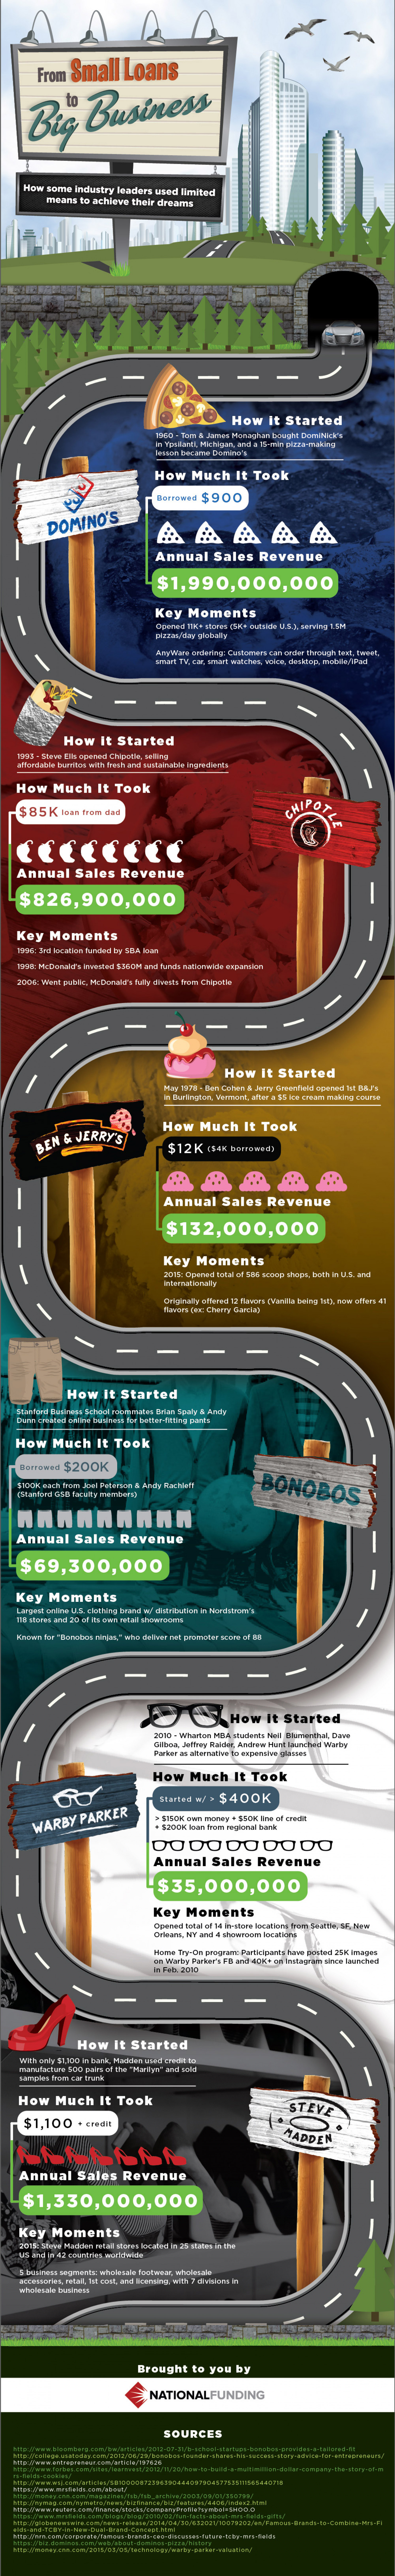 From Small Loans to Big Business Infographic